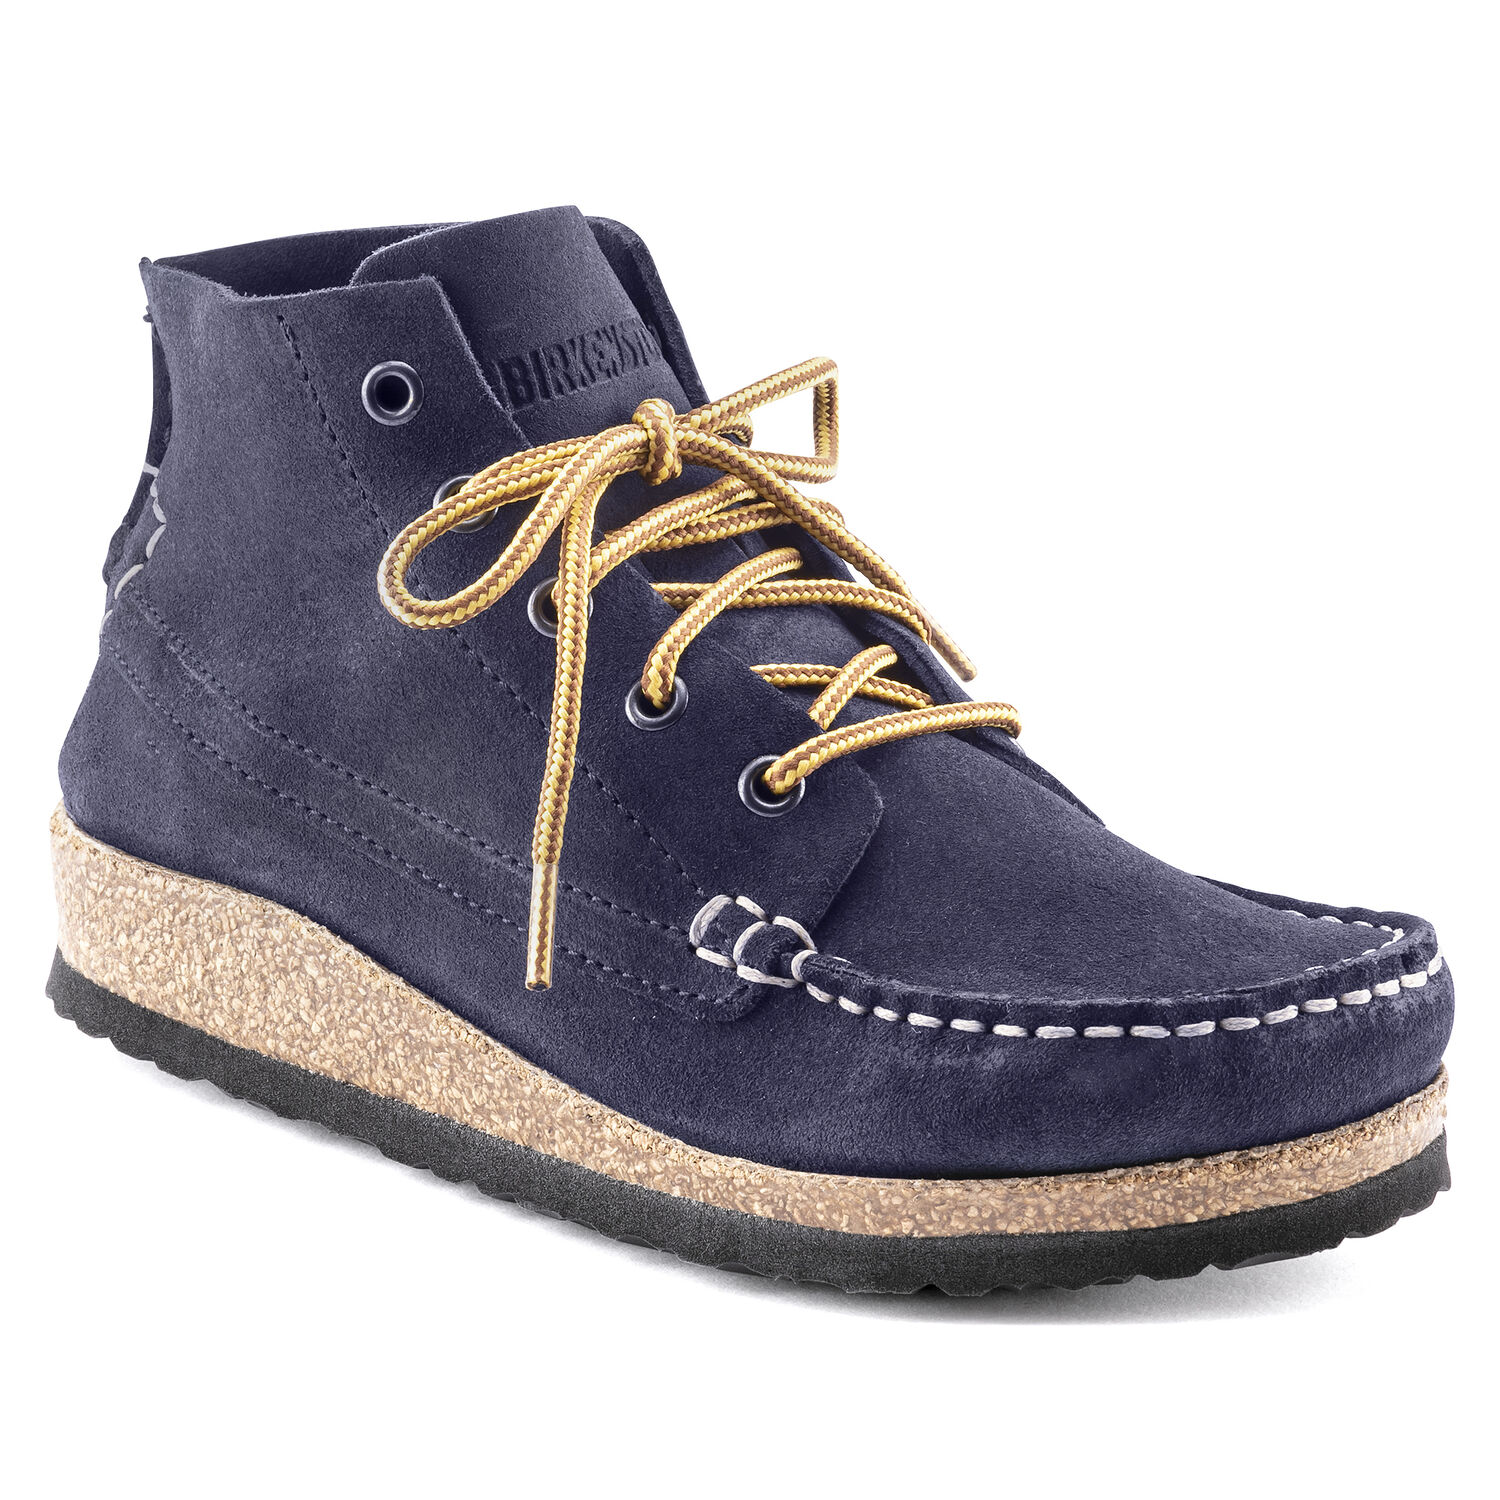 Marton Kids Suede Leather